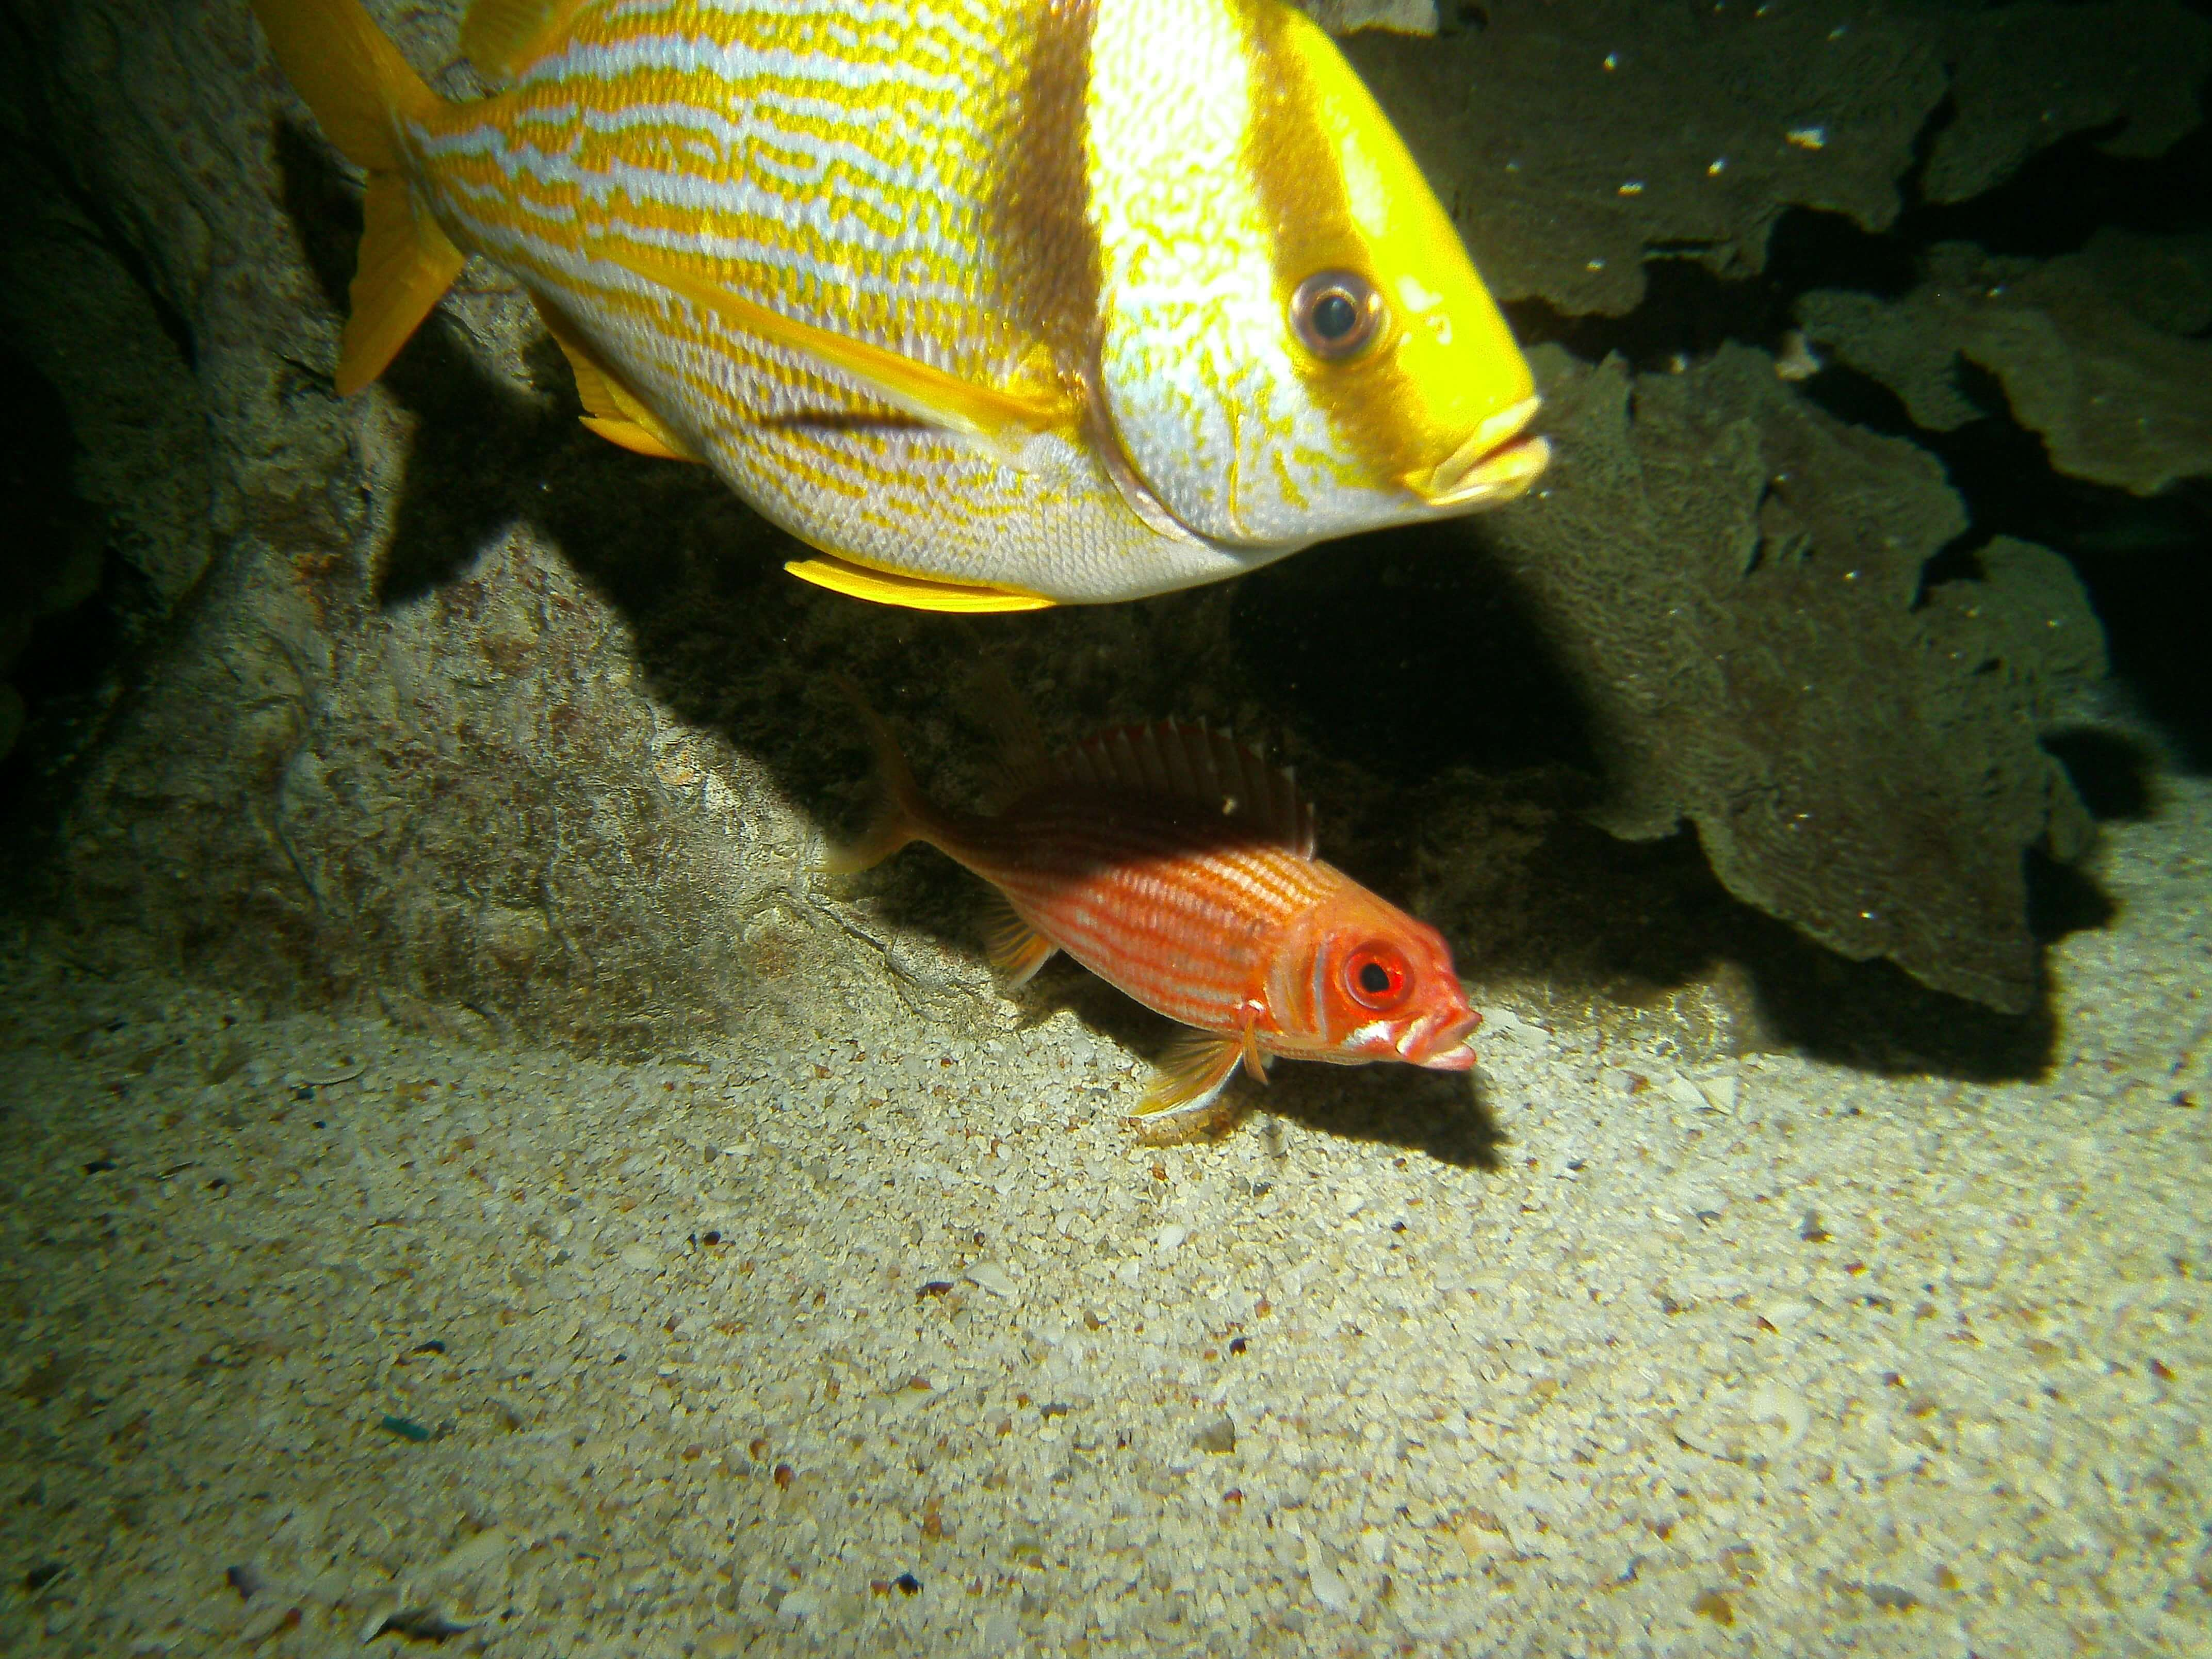 Freshwater fish jobs winnipeg - Swimming With The Fish In Charm City